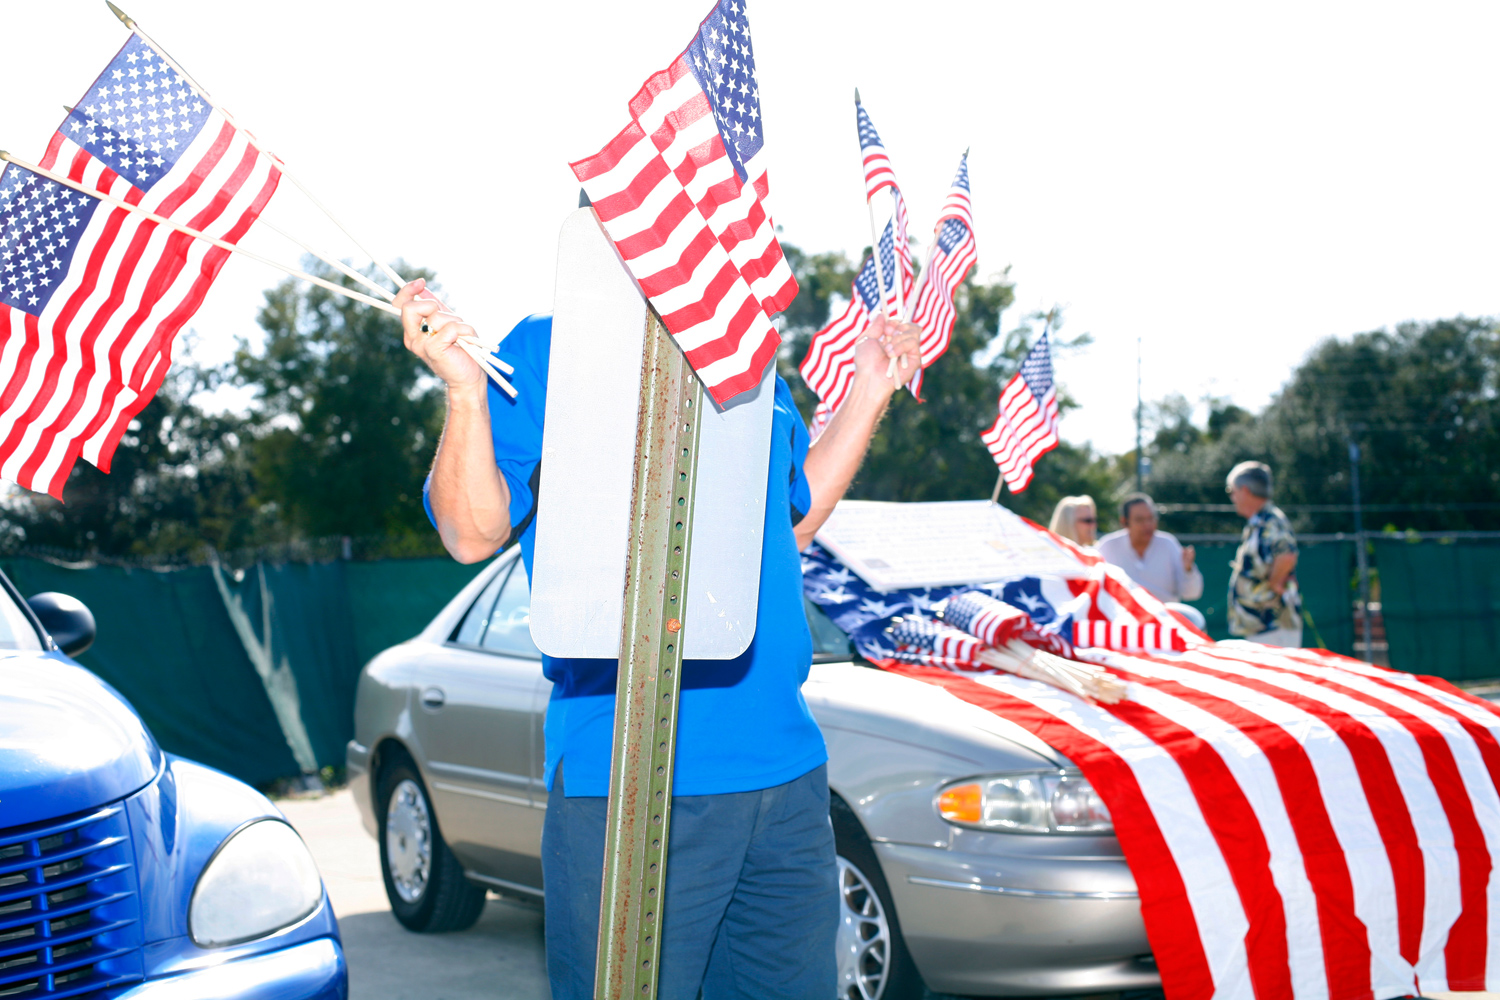 A man sells flags outside a Gingrich rally at the Centro de Familia, Orlando, Fla., January 28, 2012.